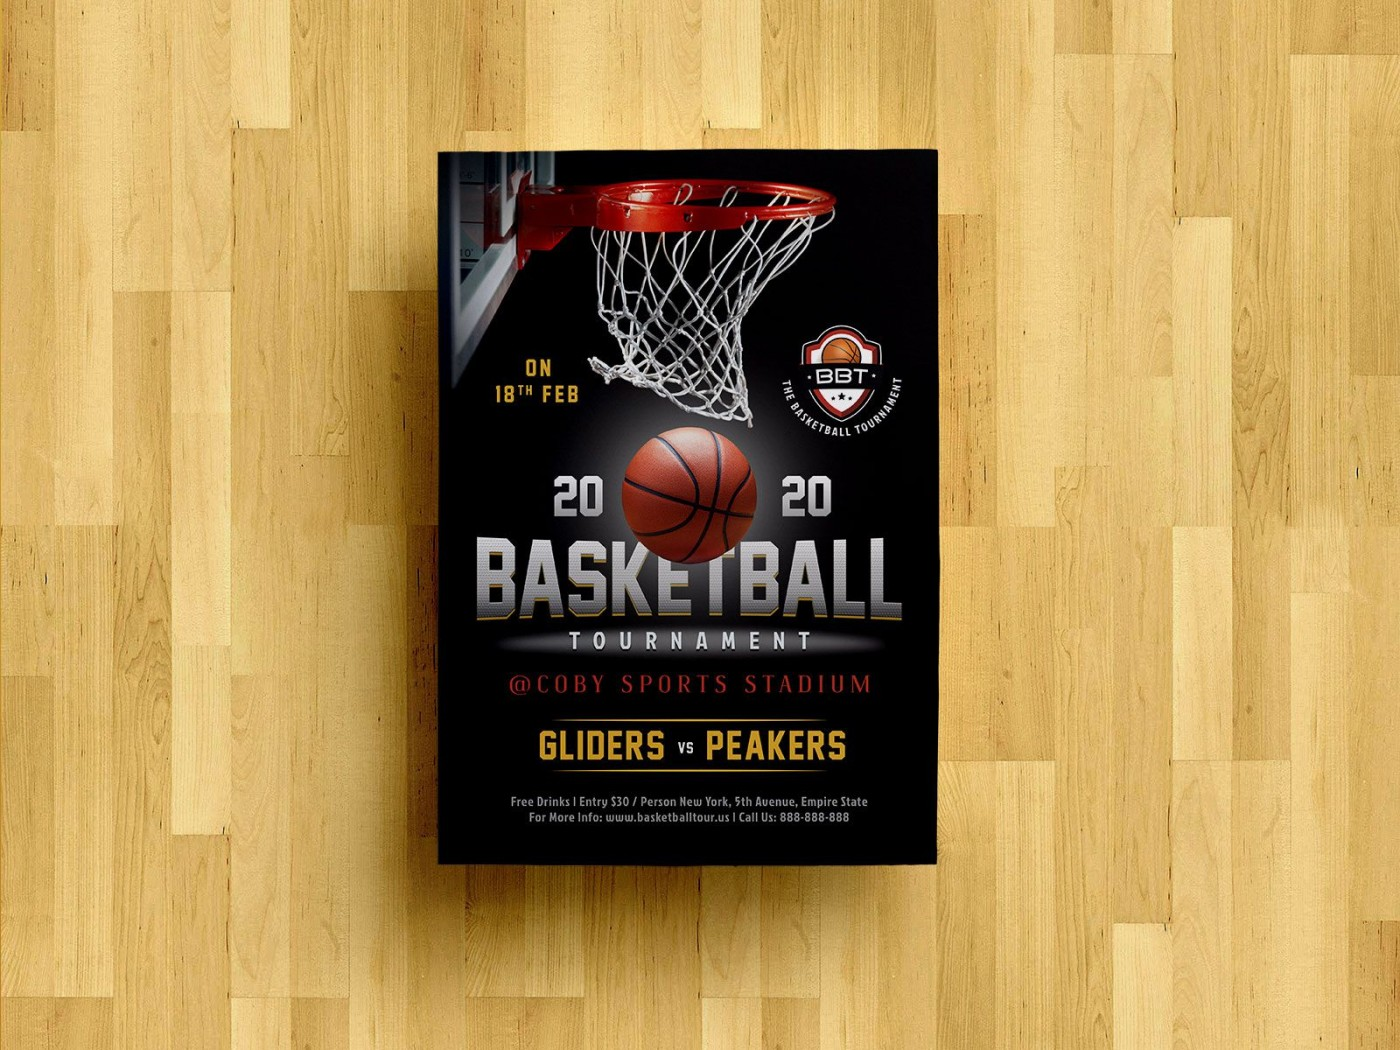 008 Striking Basketball Tournament Flyer Template Concept  3 On Free1400